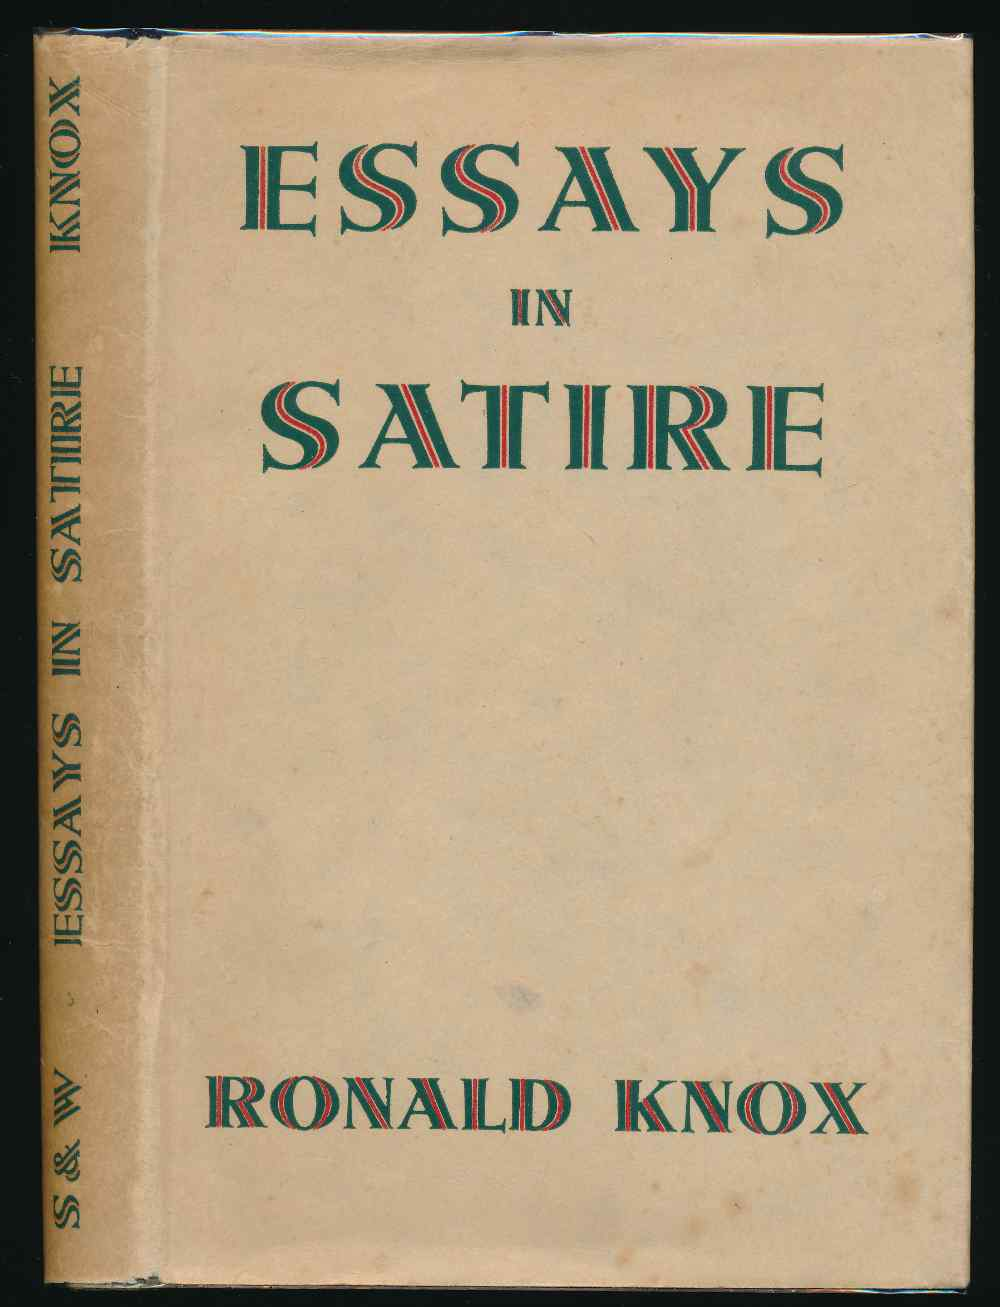 Essays in satire